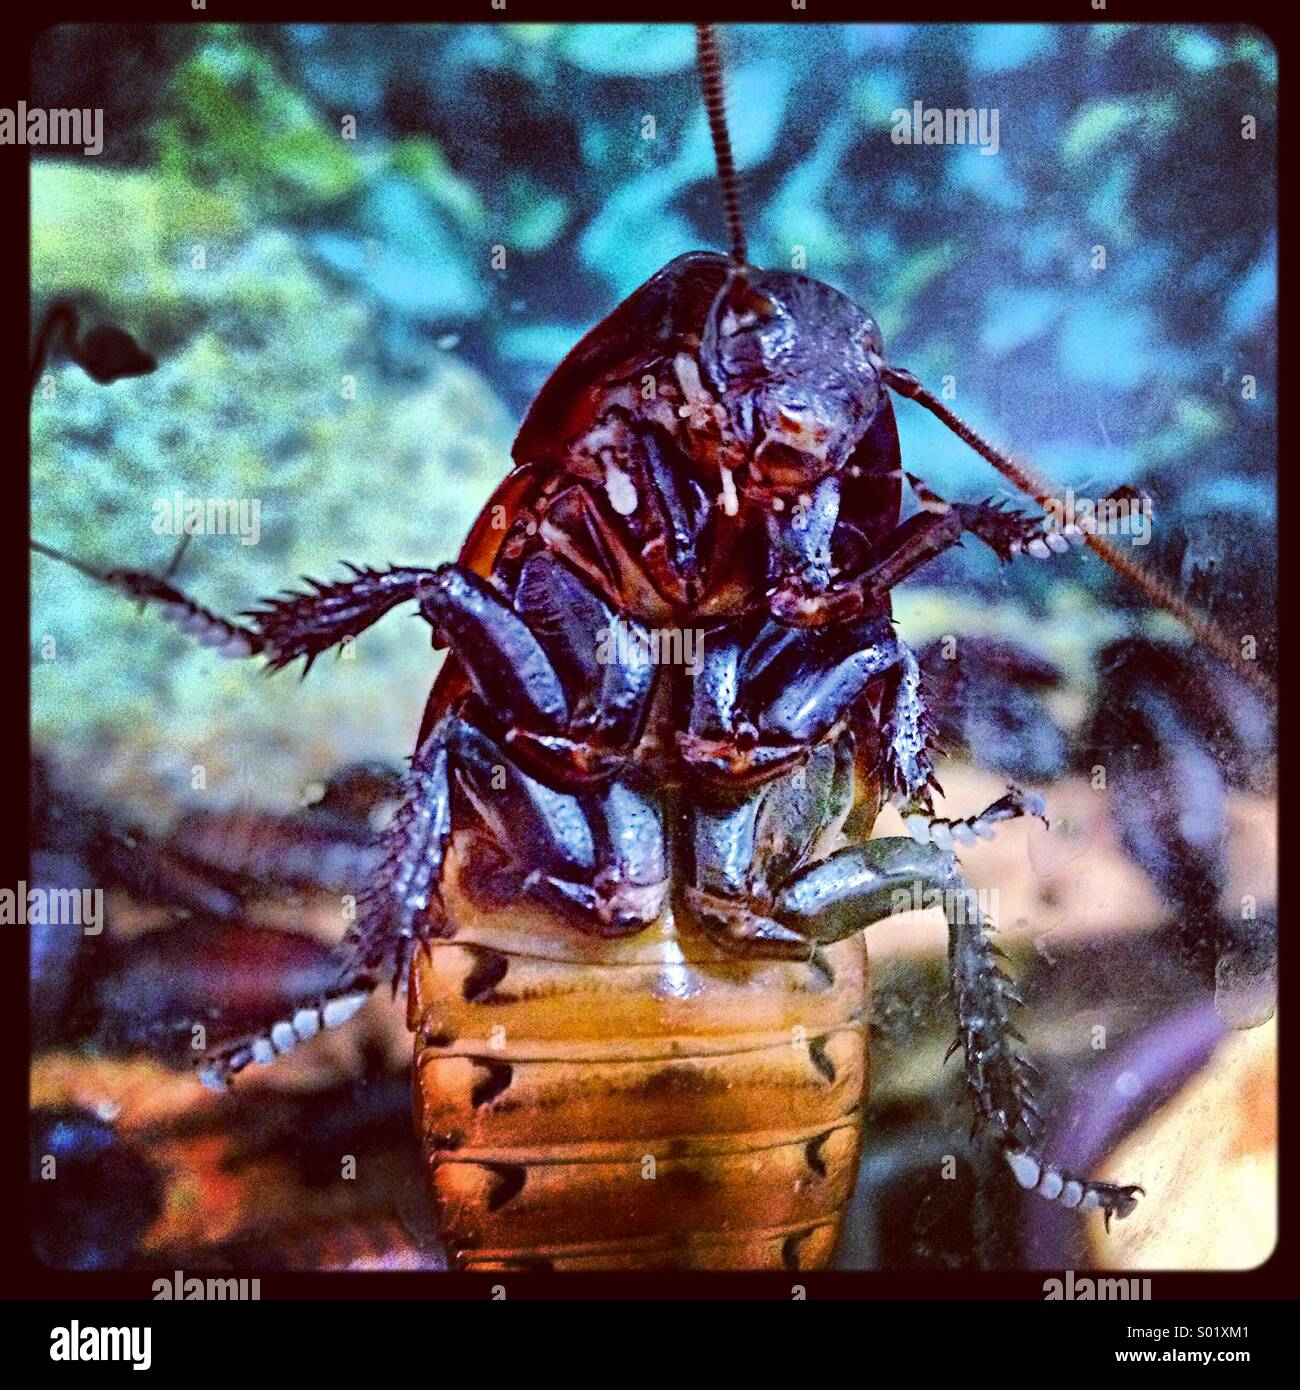 The underside of a Madagascar Hissing Cockroach. - Stock Image